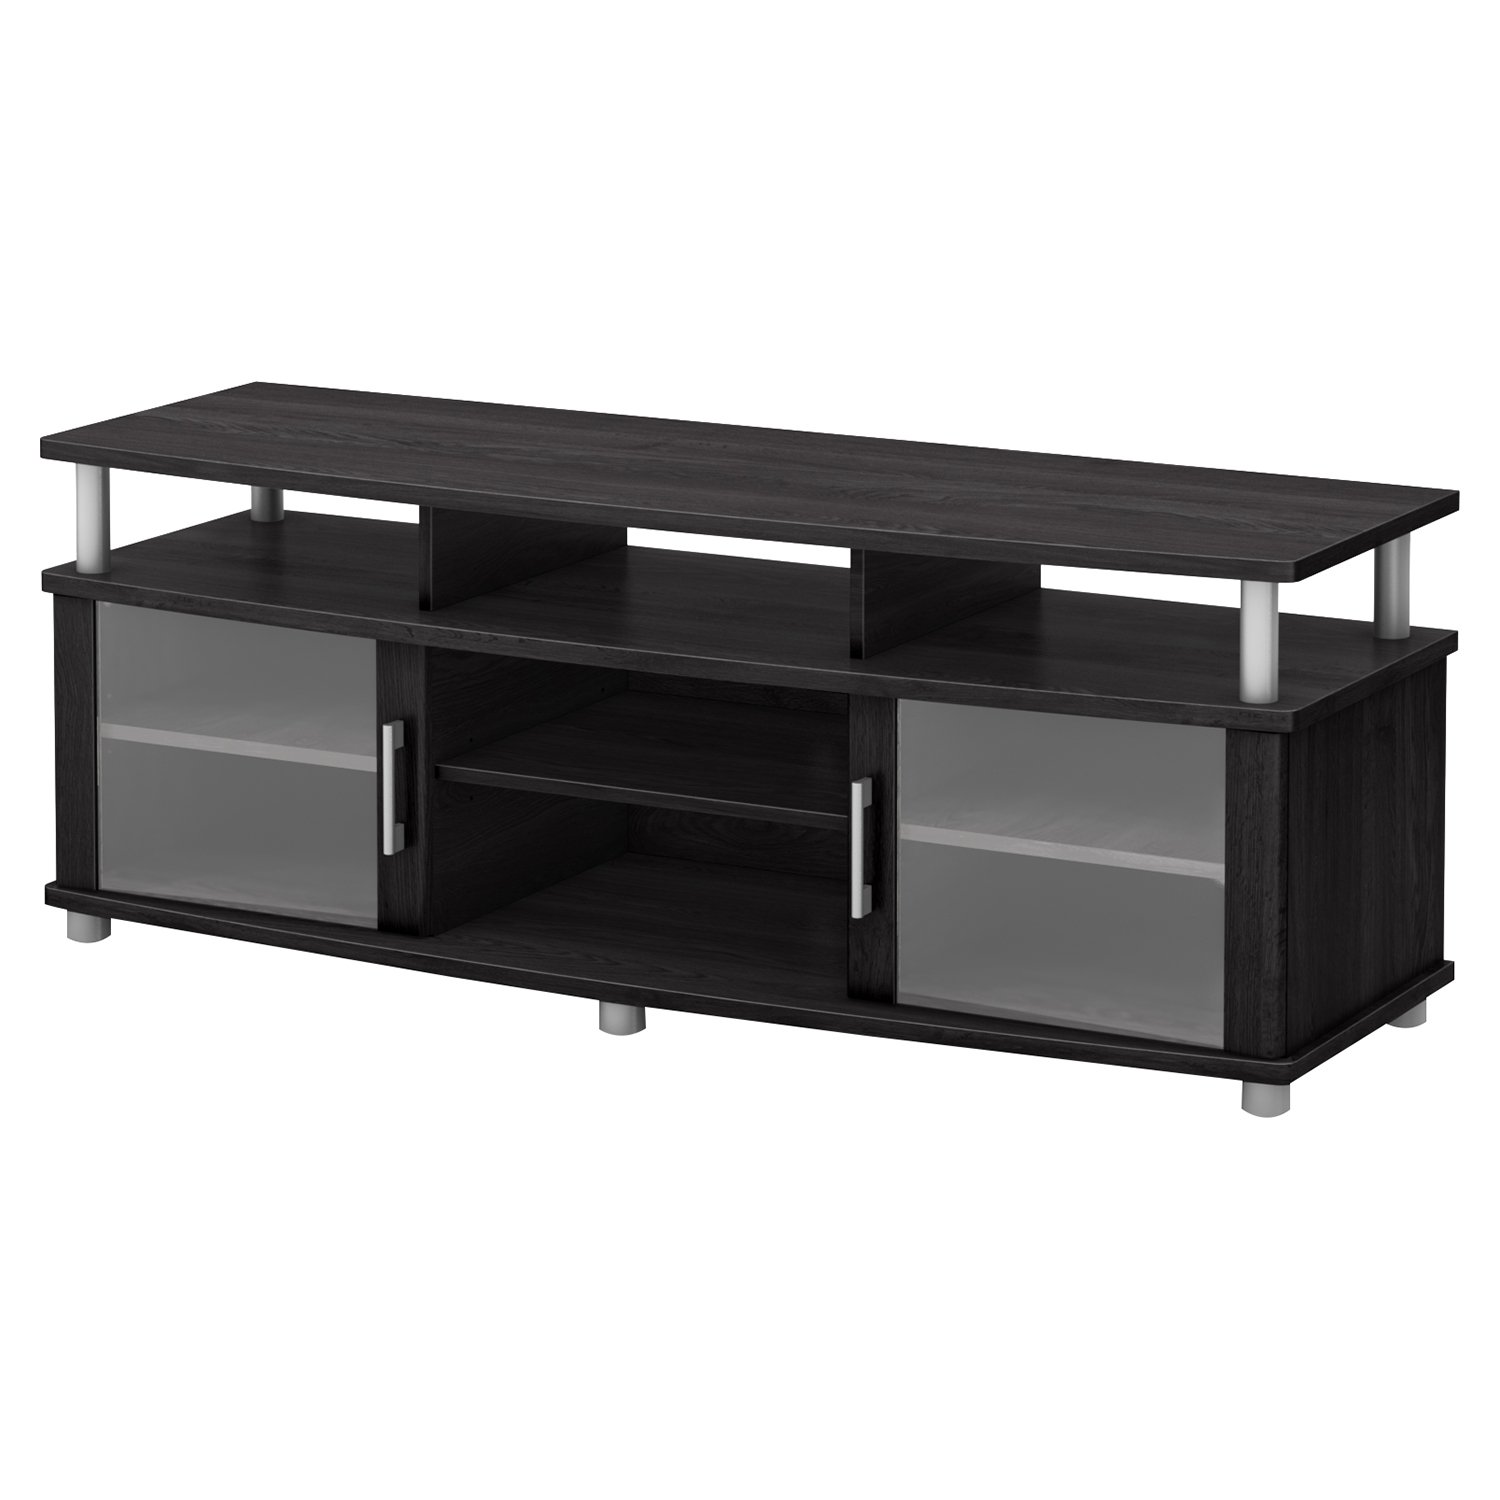 City Life TV Stand - Gray Oak